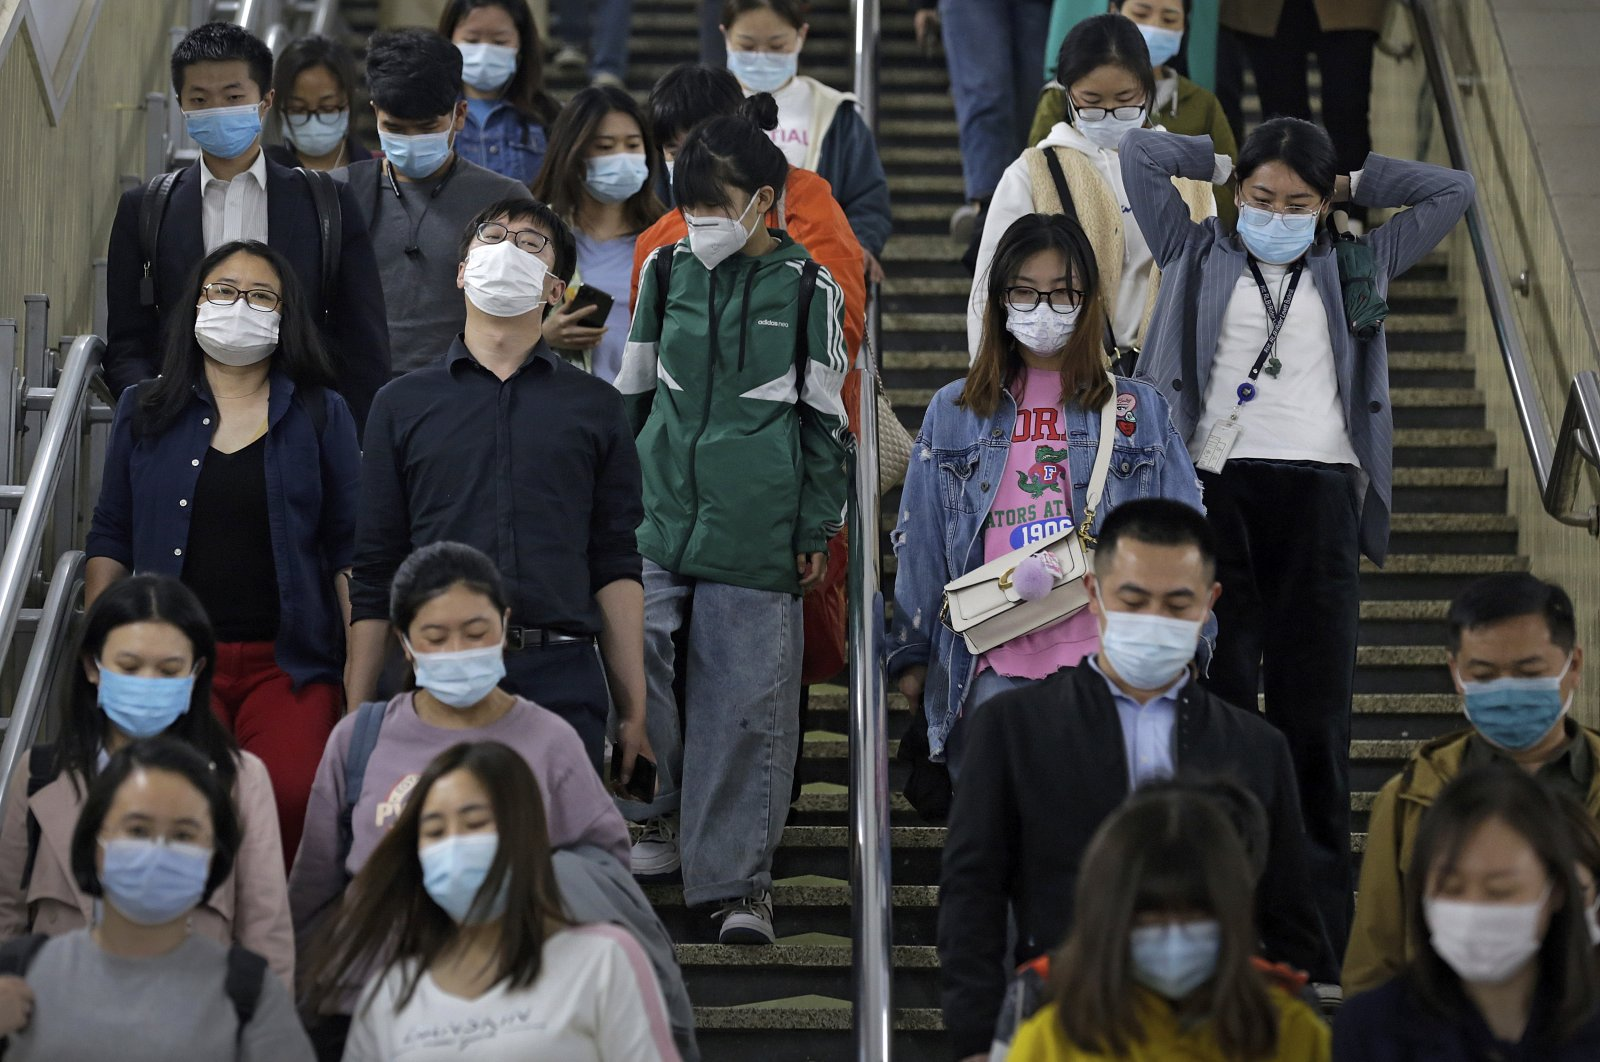 People wearing face masks to help curb the spread of the coronavirus walk down the staircase leading to a subway station during the evening rush hour in Beijing, China, April 26, 2021. (AP Photo)